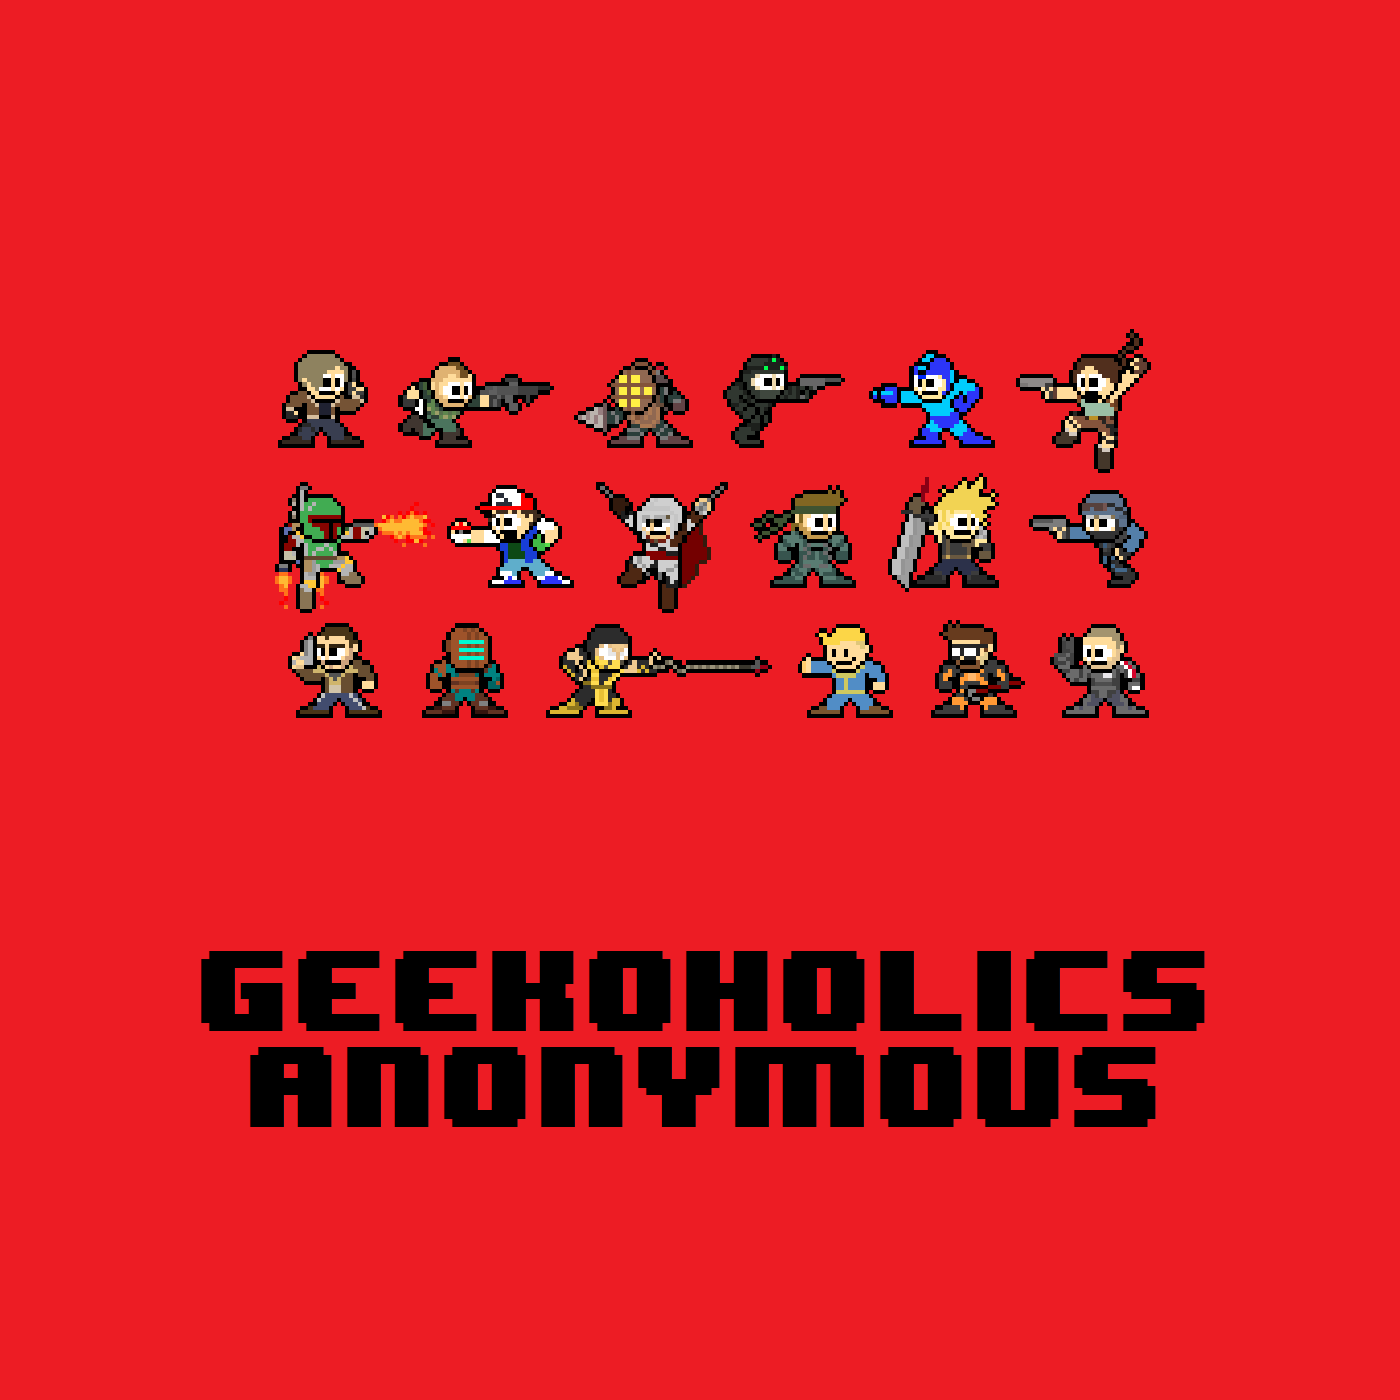 Resident Evil Village, PS5 Shortages, Mortal Kombat and more - Geekoholics Anonymous Podcast 305 show art